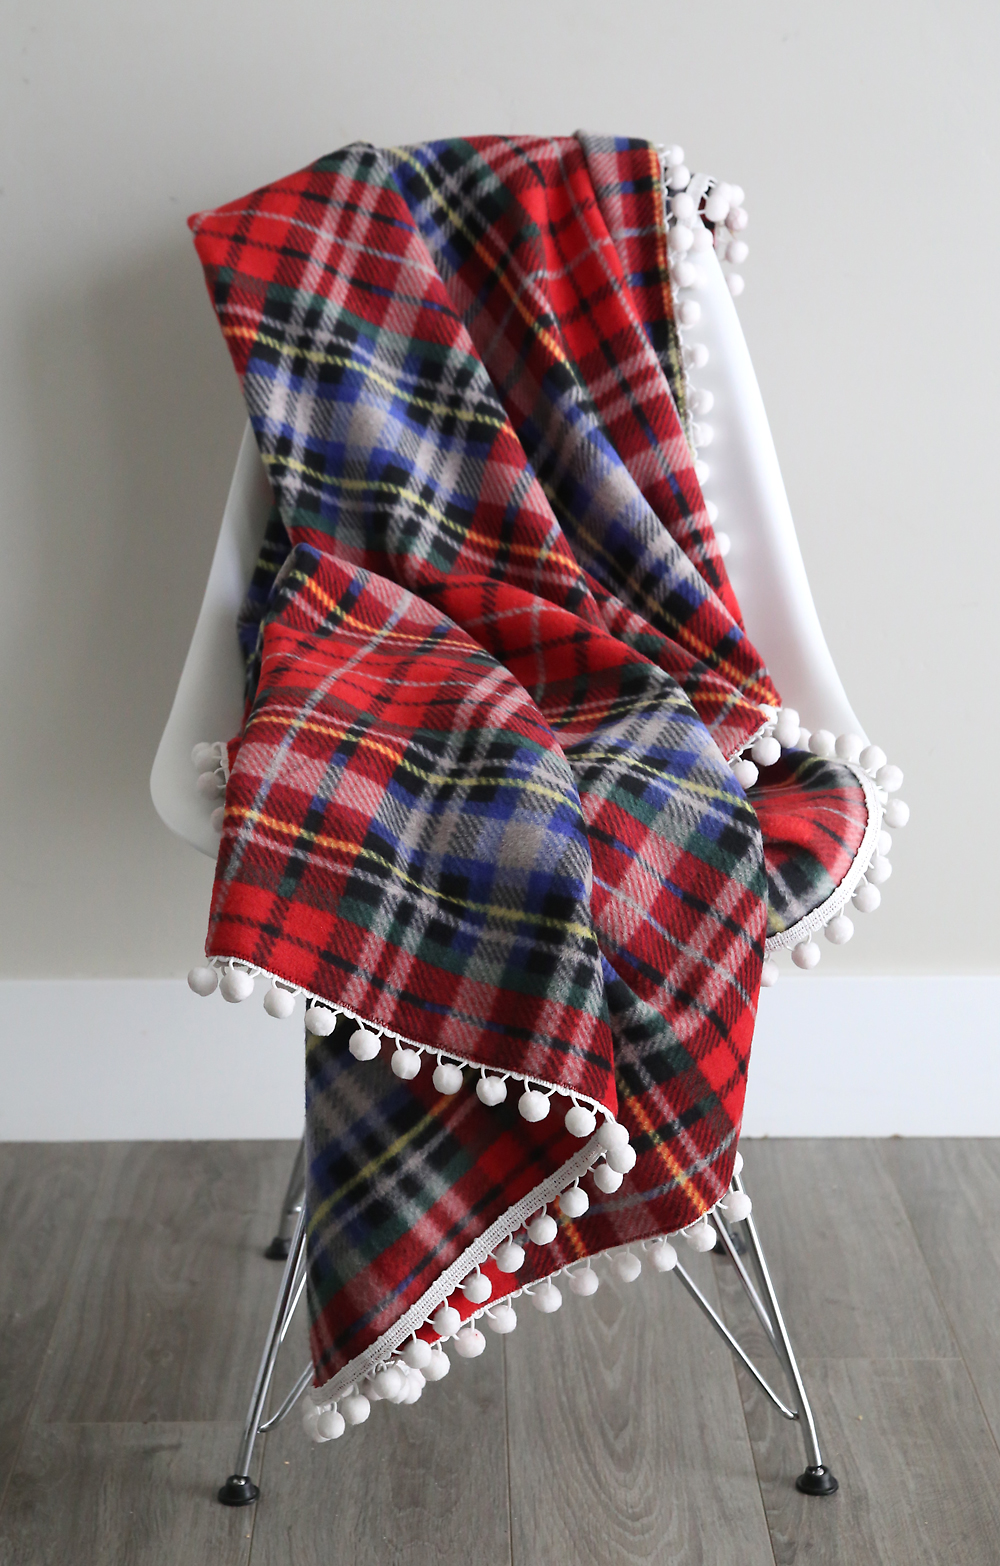 DIY fleece blanket trimmed with pom poms draped over a chair